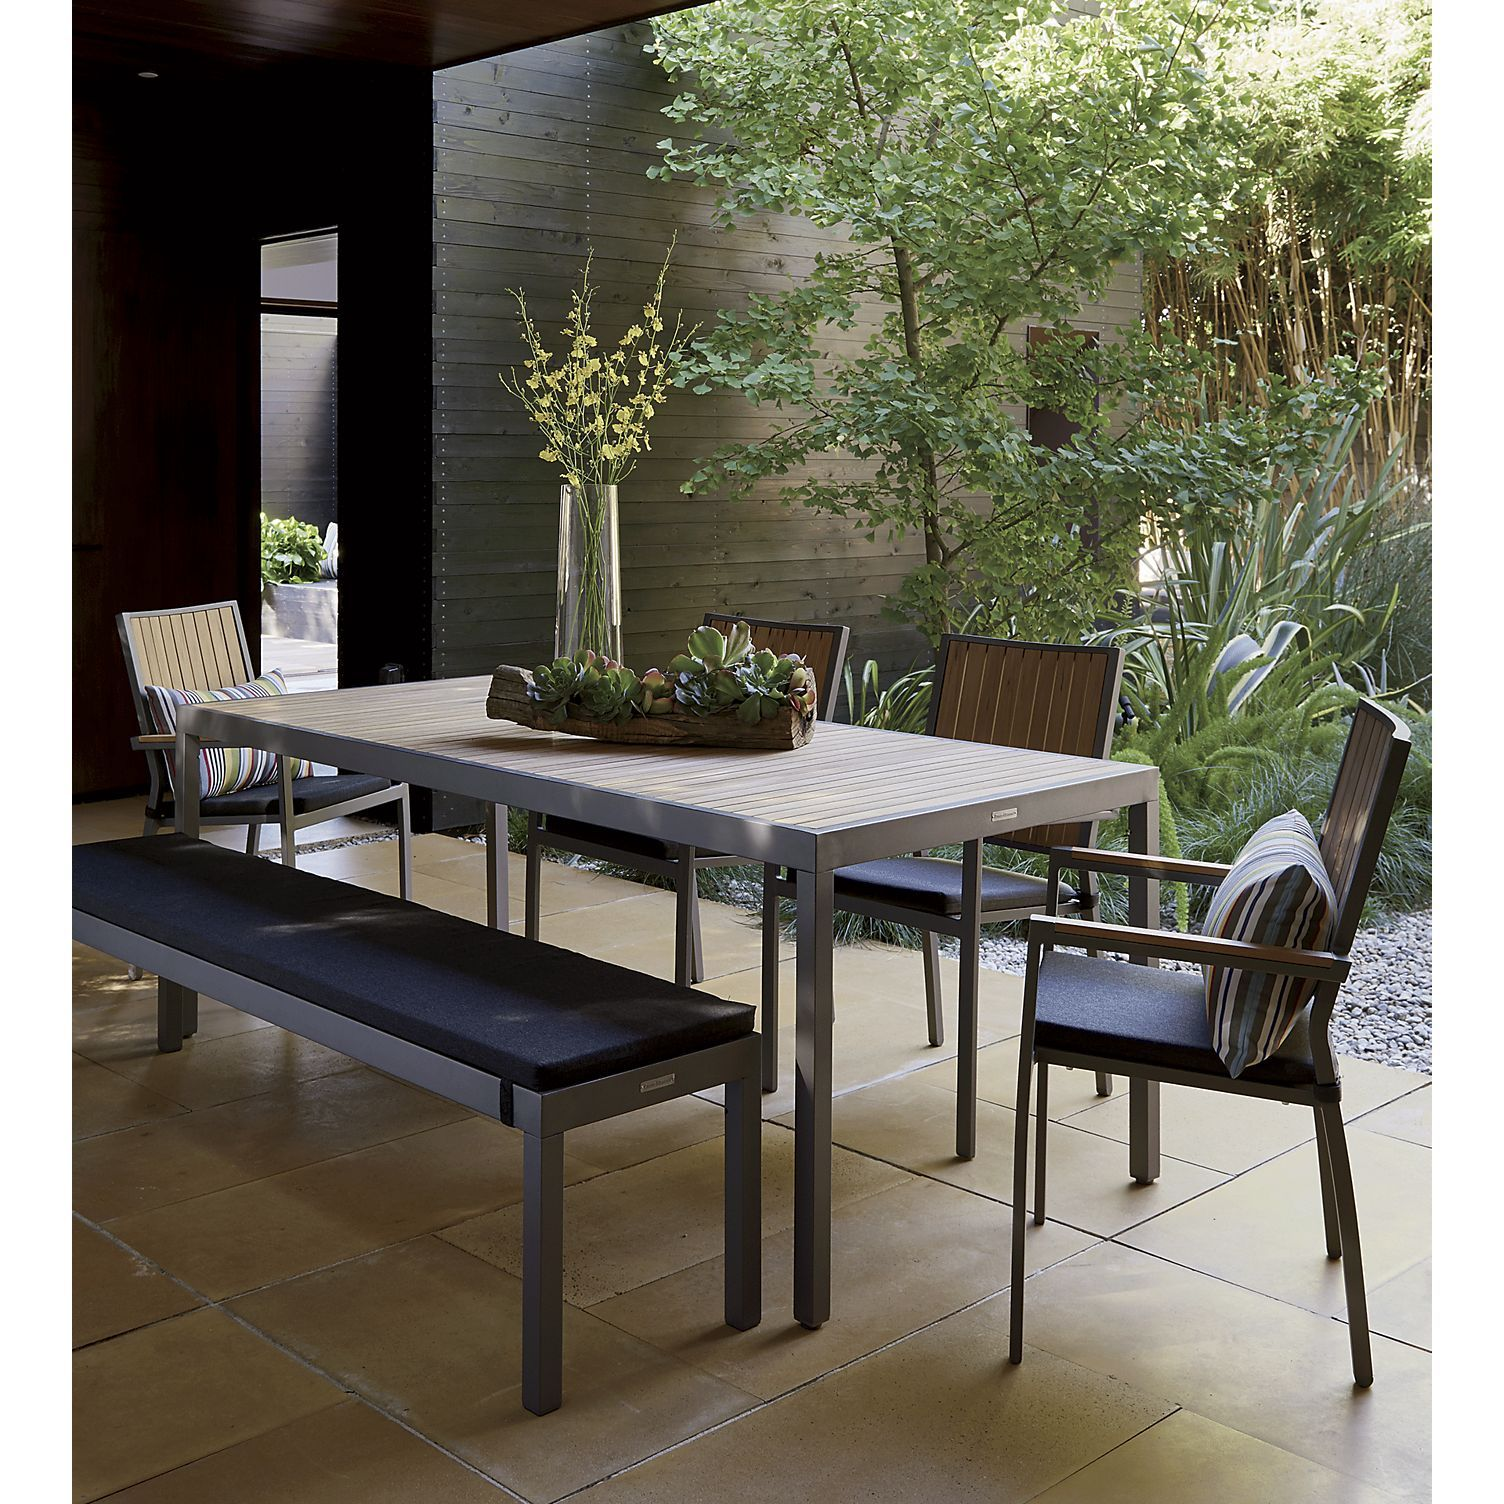 Rectangular dining table seats up to eight the alfresco grey rectangular outdoor dining table is a crate and barrel